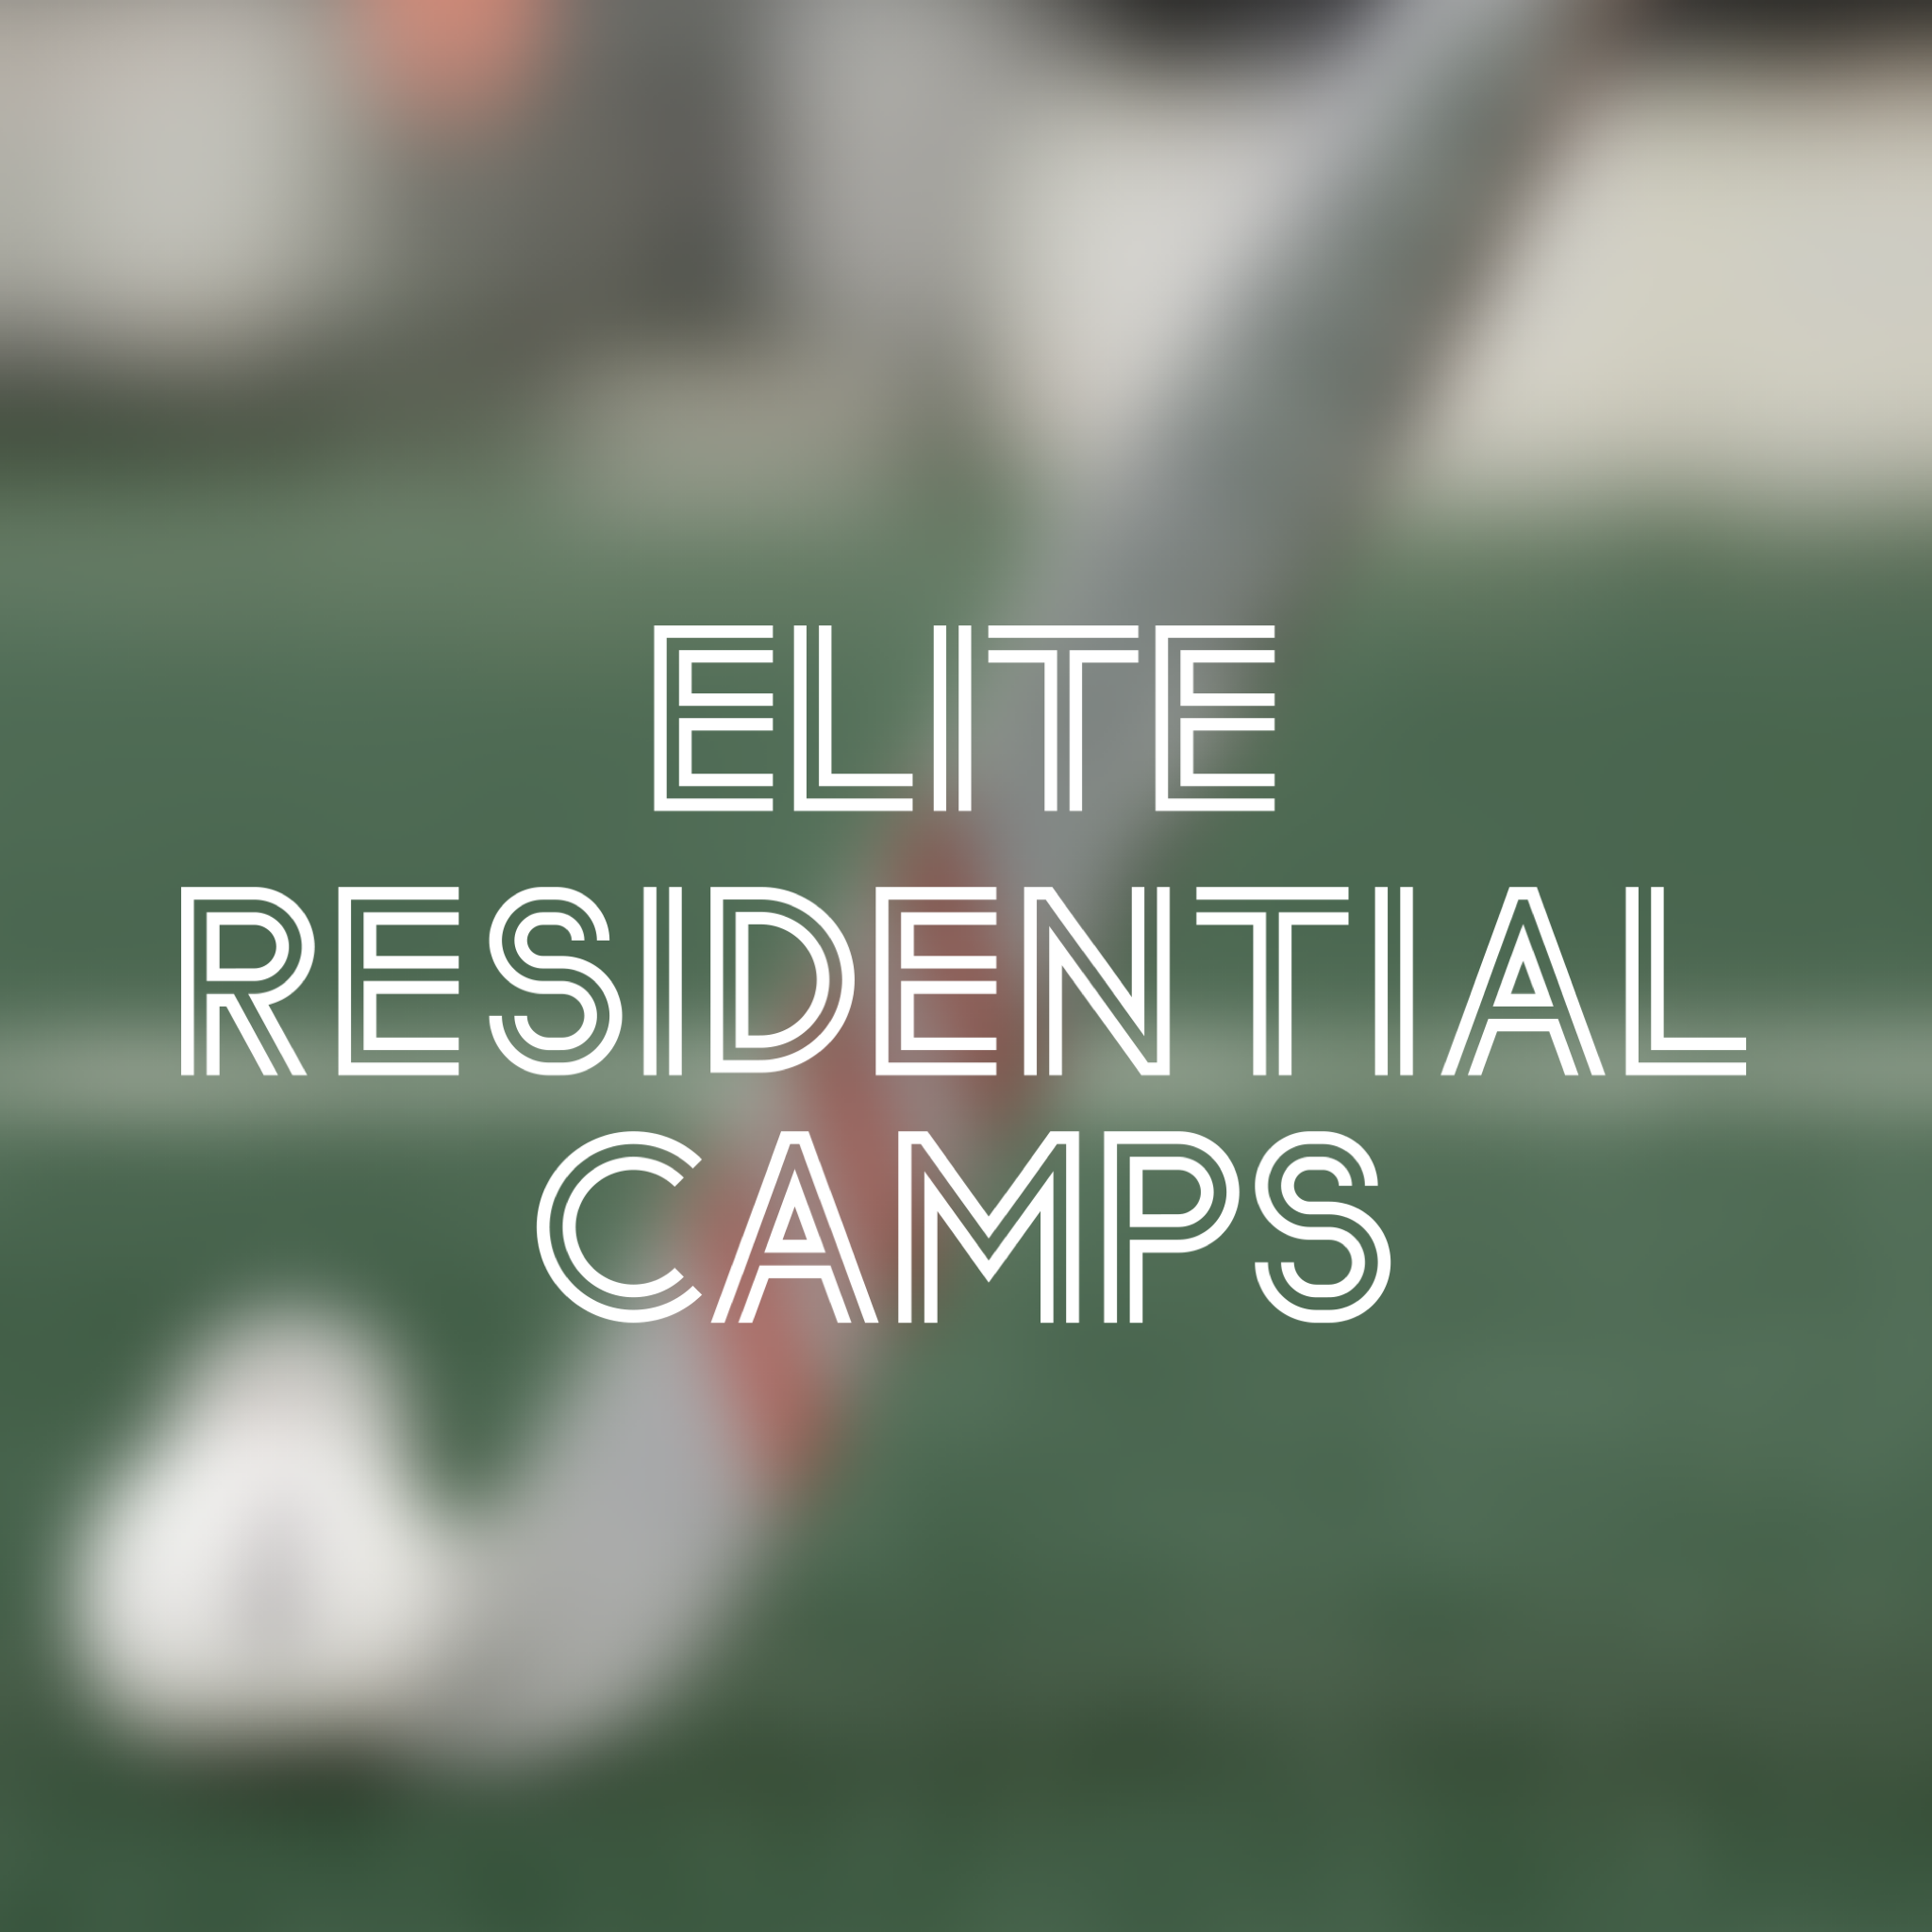 ELITE RESIDENTIAL CAMPS